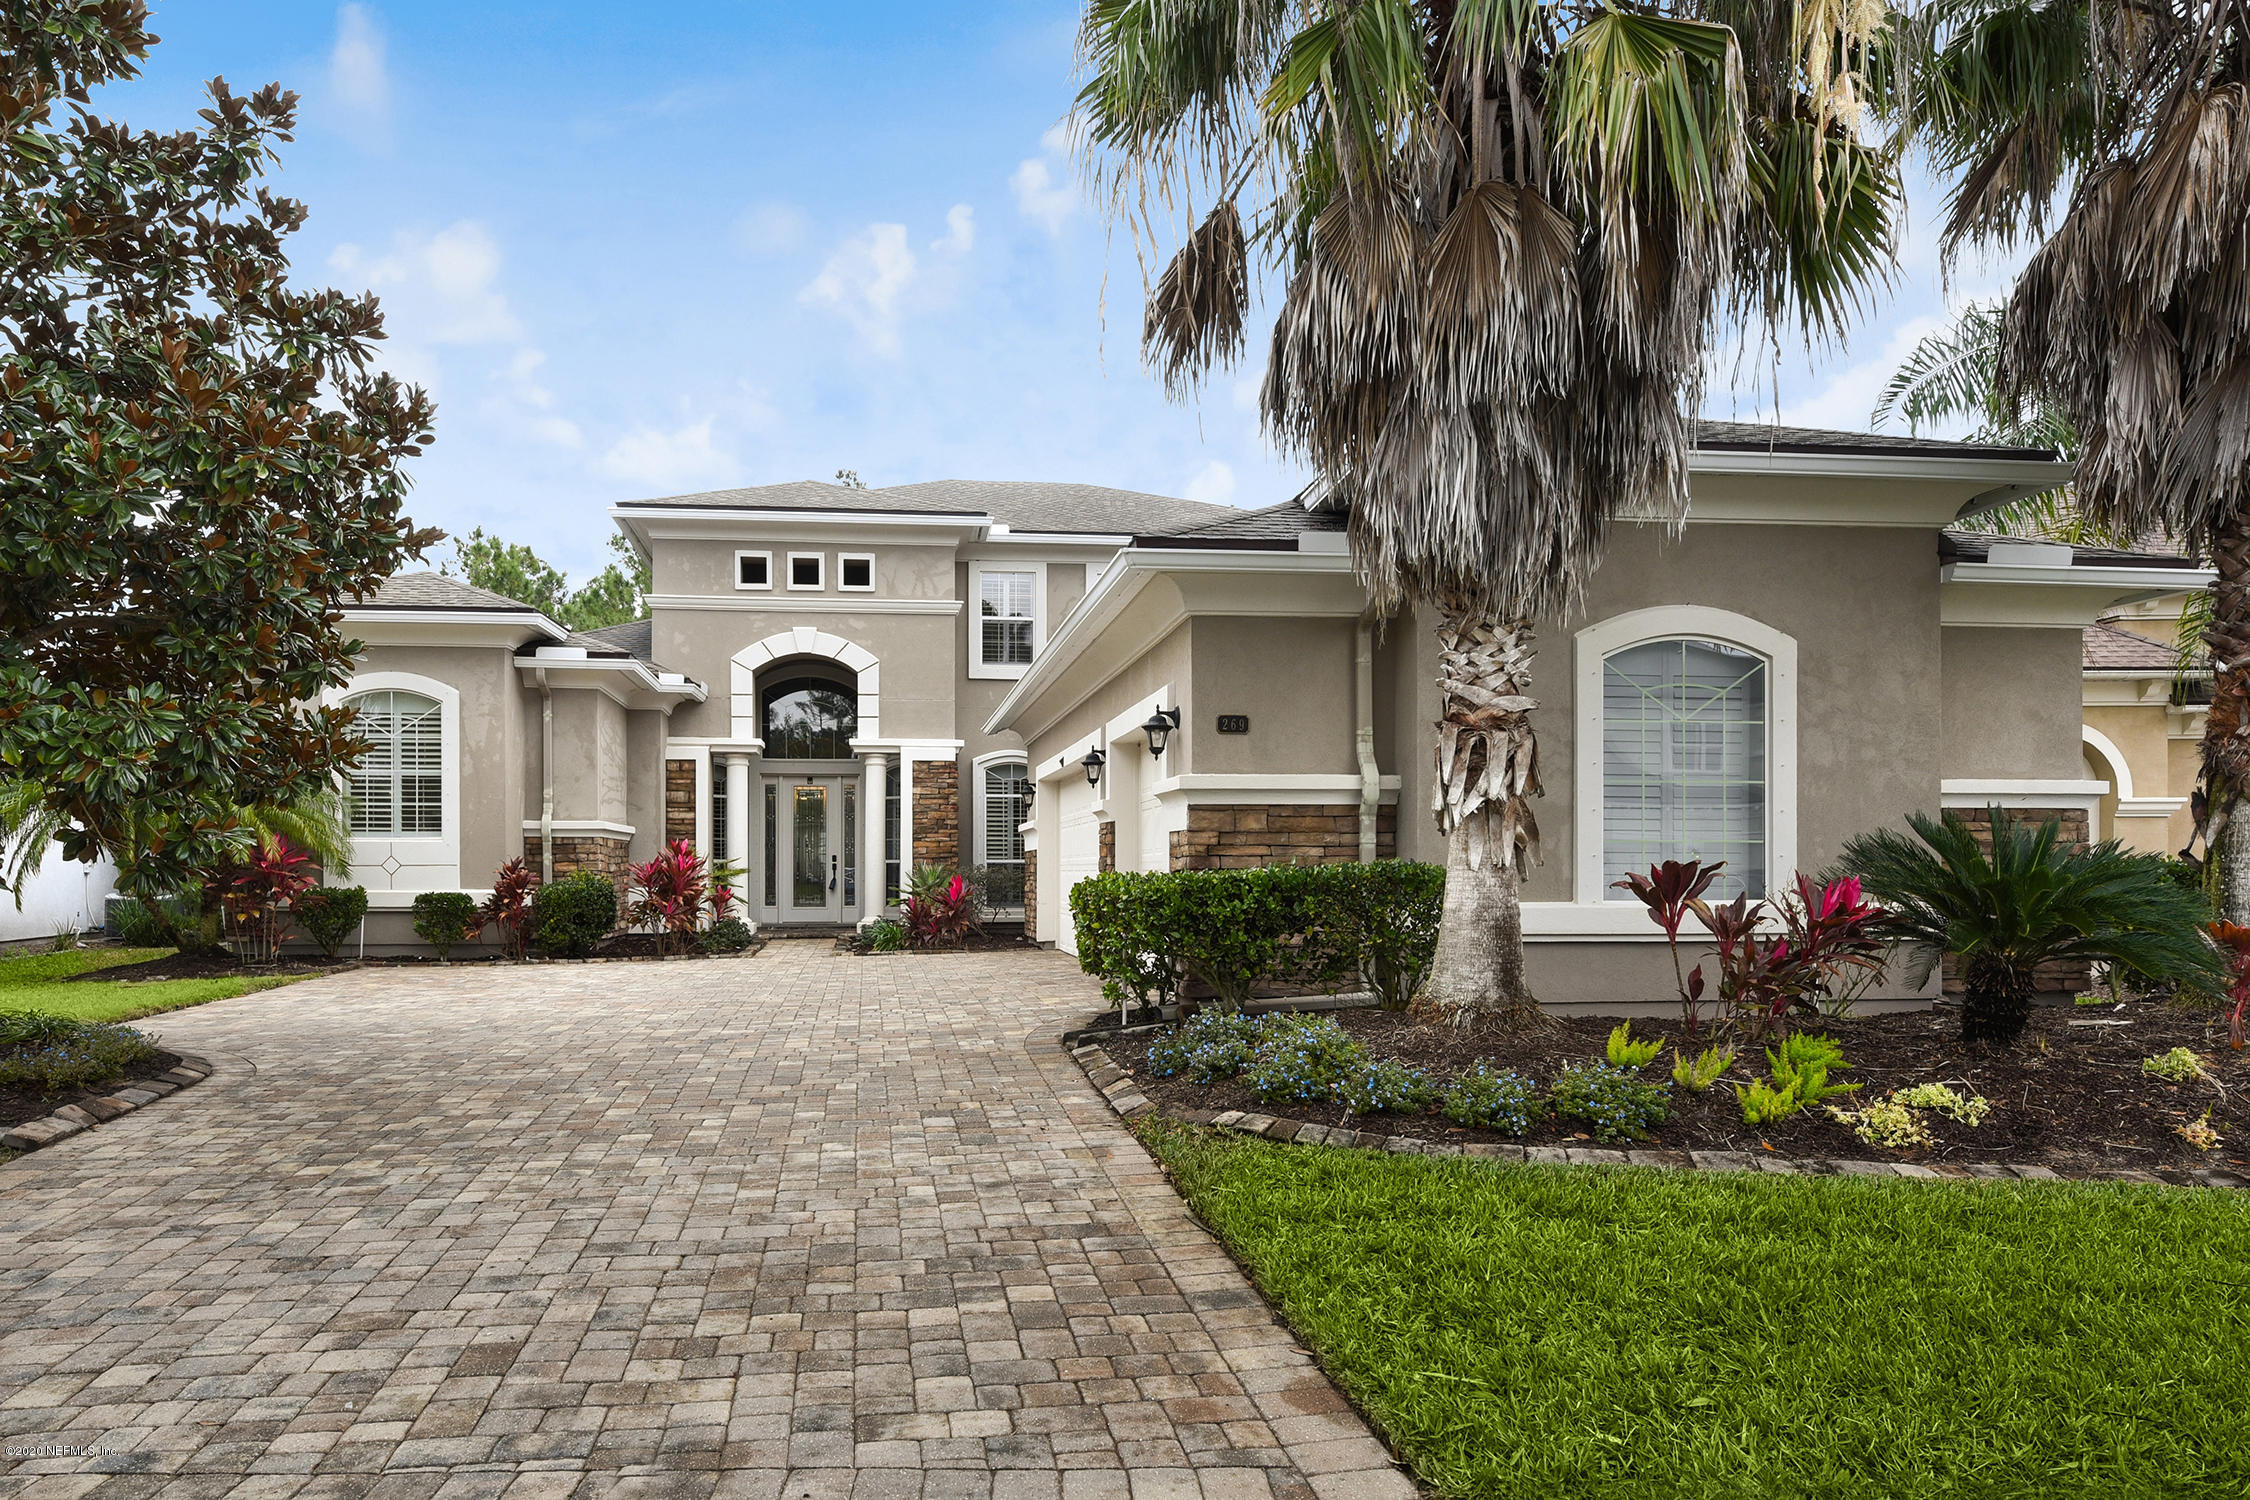 269 Cape May Ave Ponte Vedra, Fl 32081